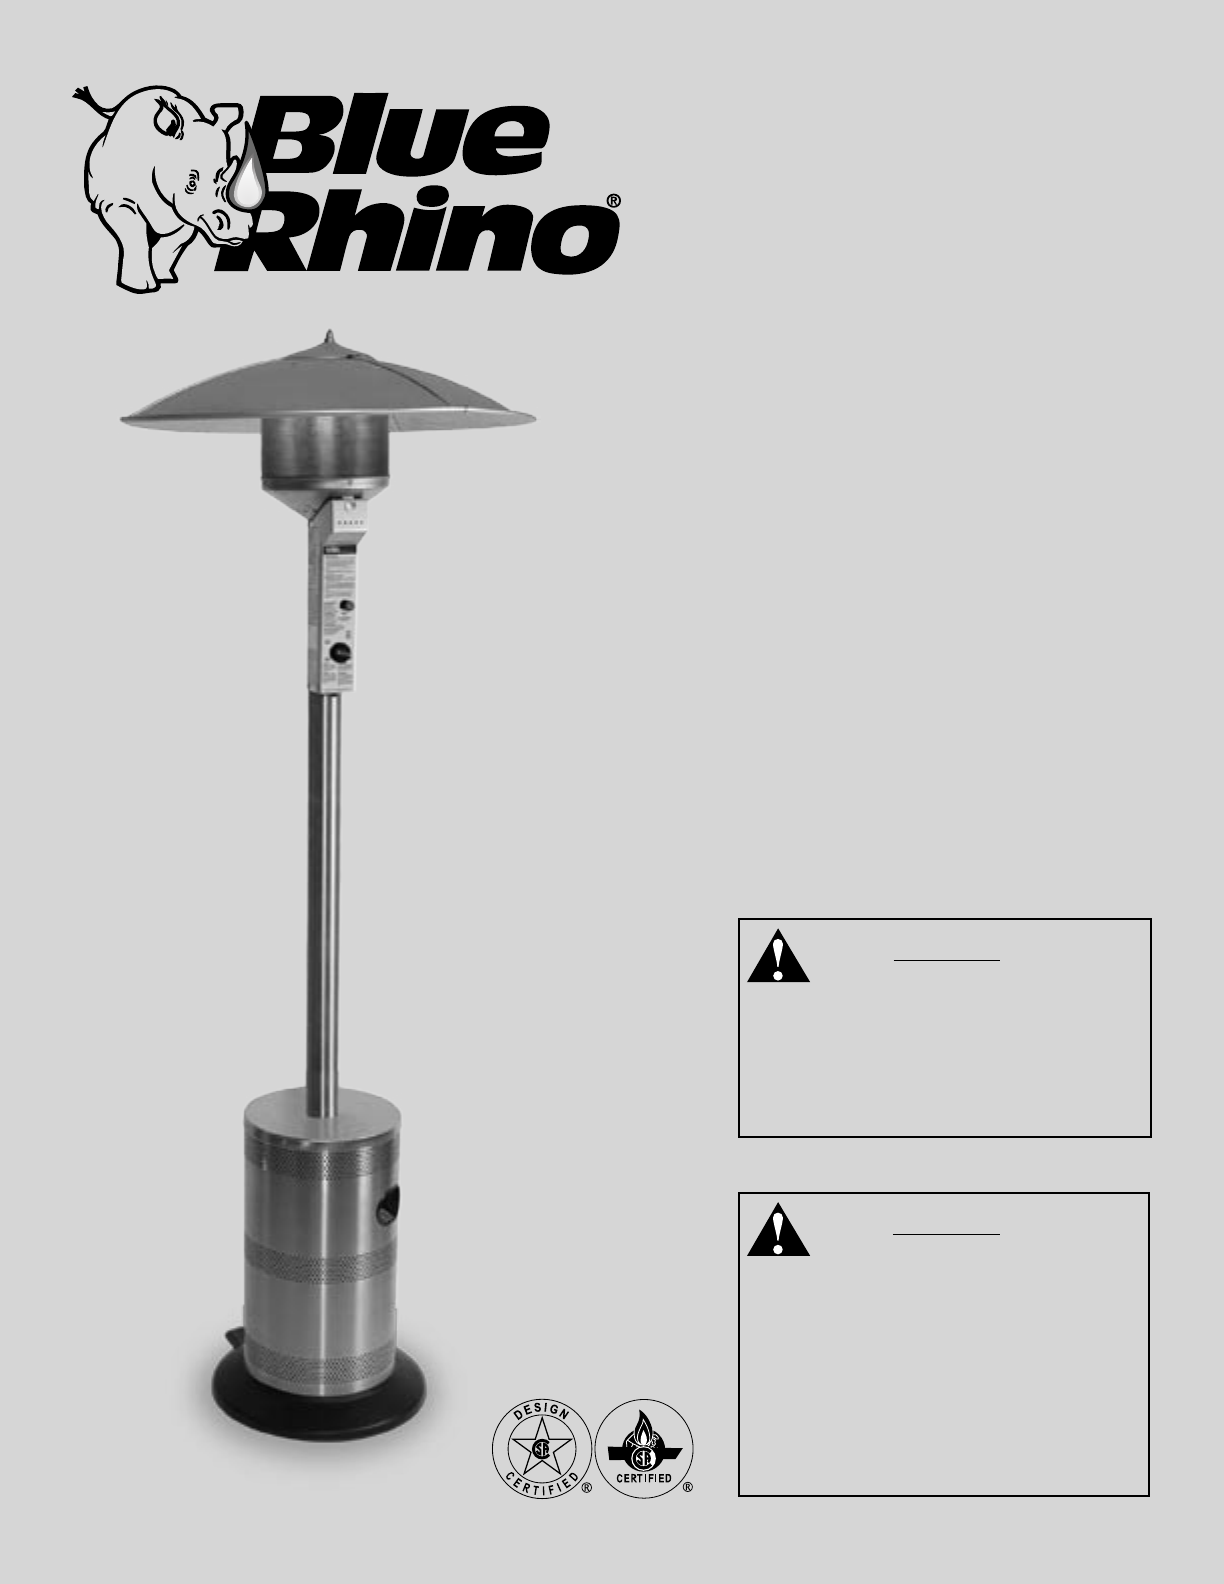 blue rhino patio heater gwu501e user guide manualsonline com rh lawnandgarden manualsonline com Gas Manual Propane Owners Patio Model Heater Sf87phlp Charmglow Patio Heater Owner's Manual